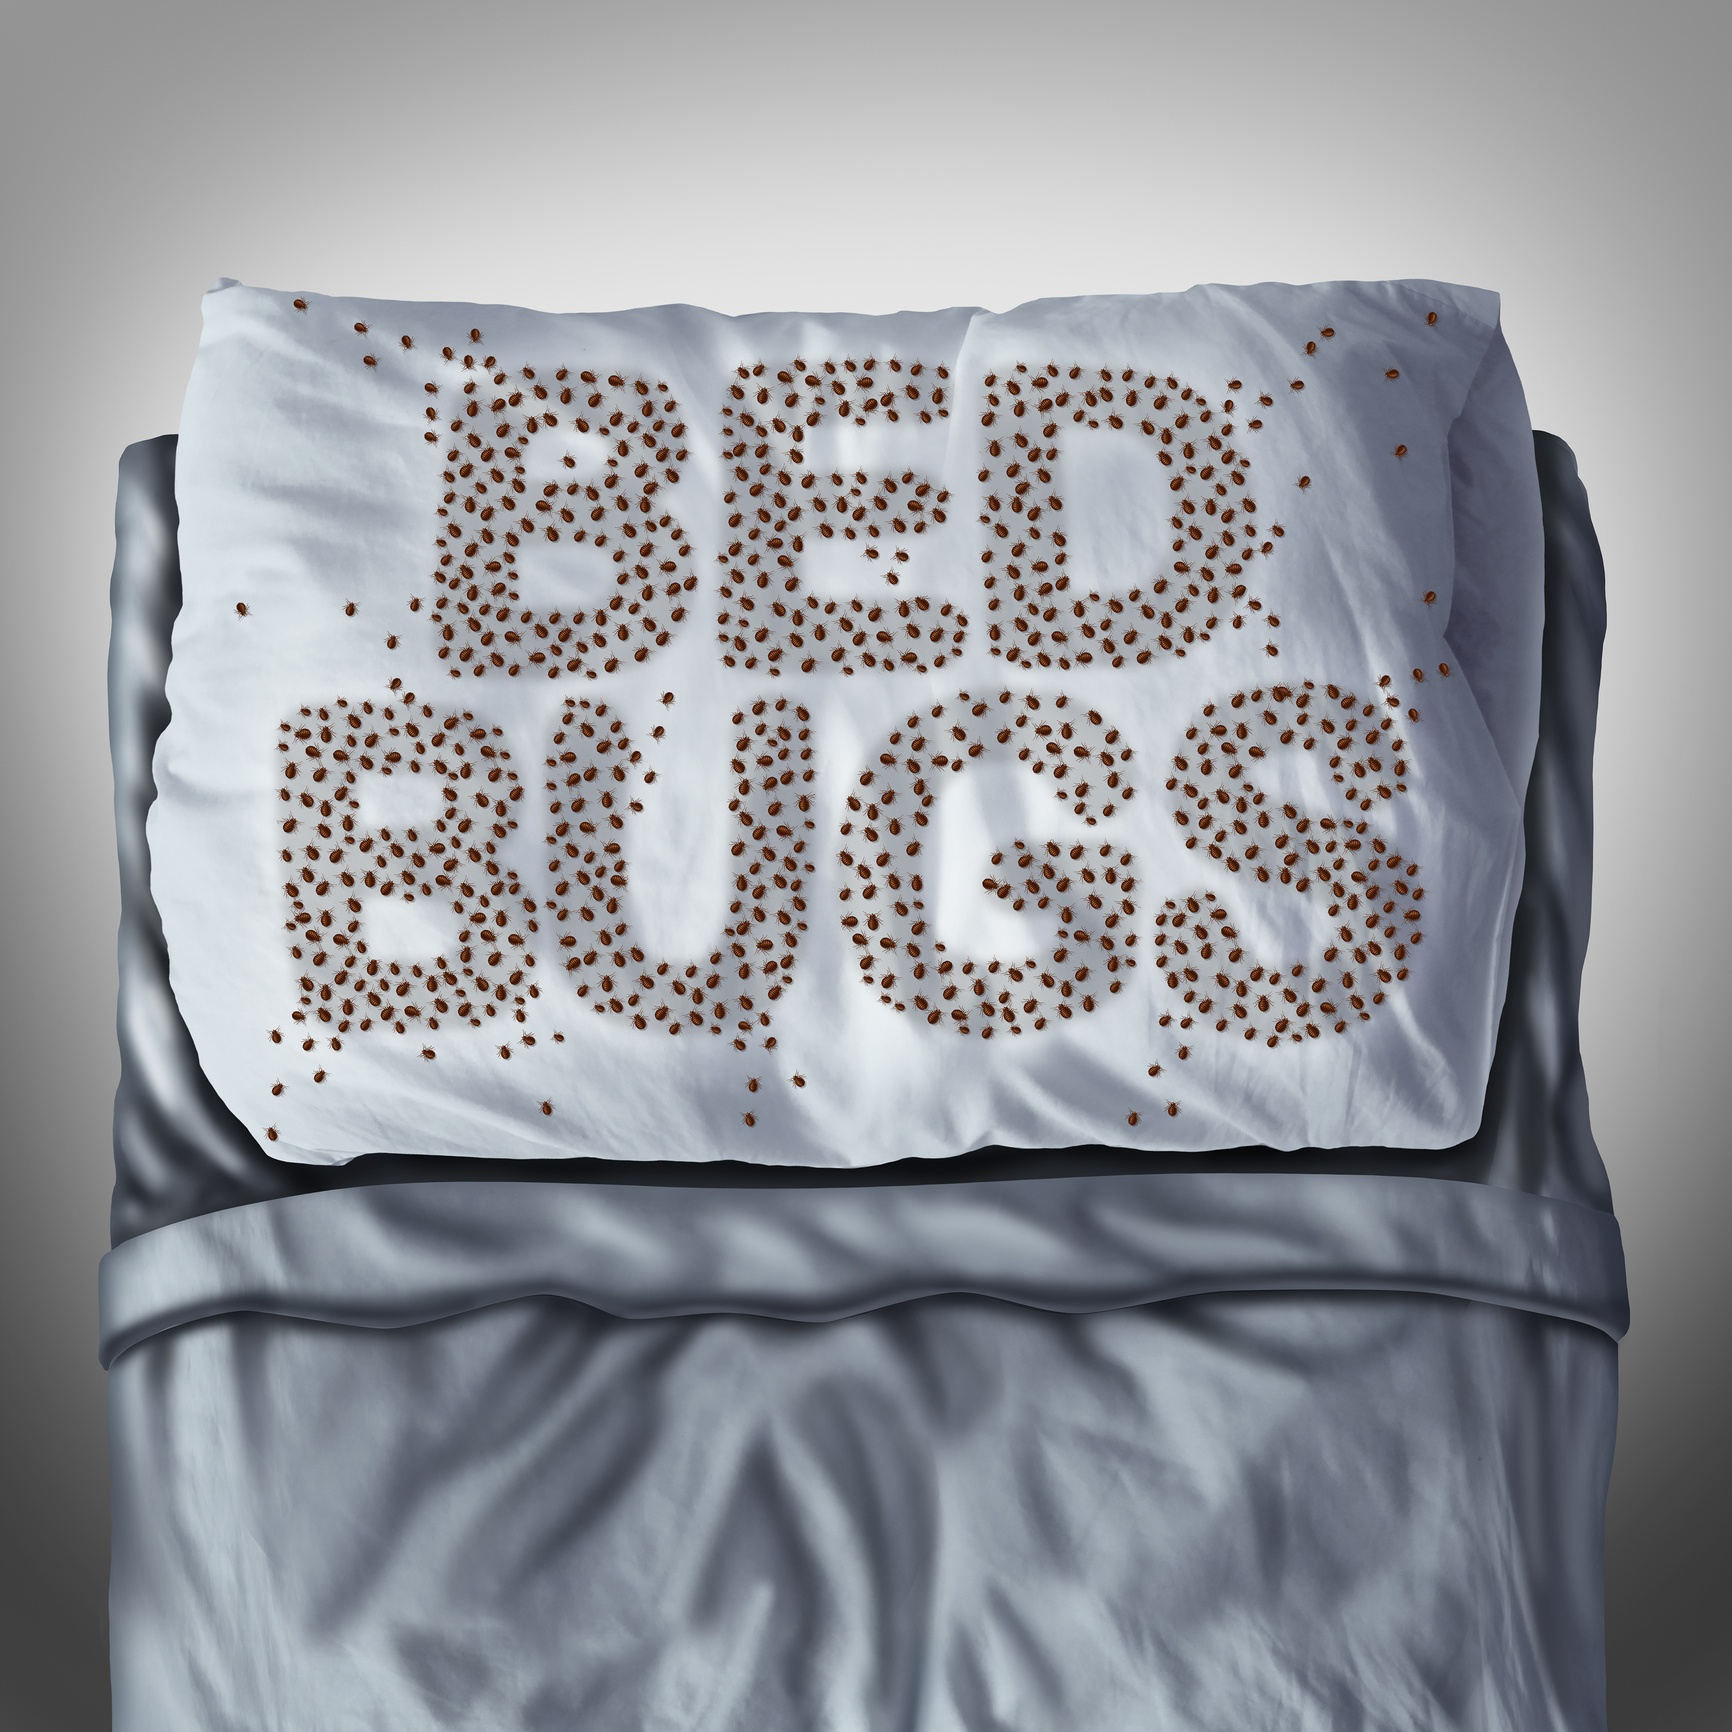 bed bugs on pillow